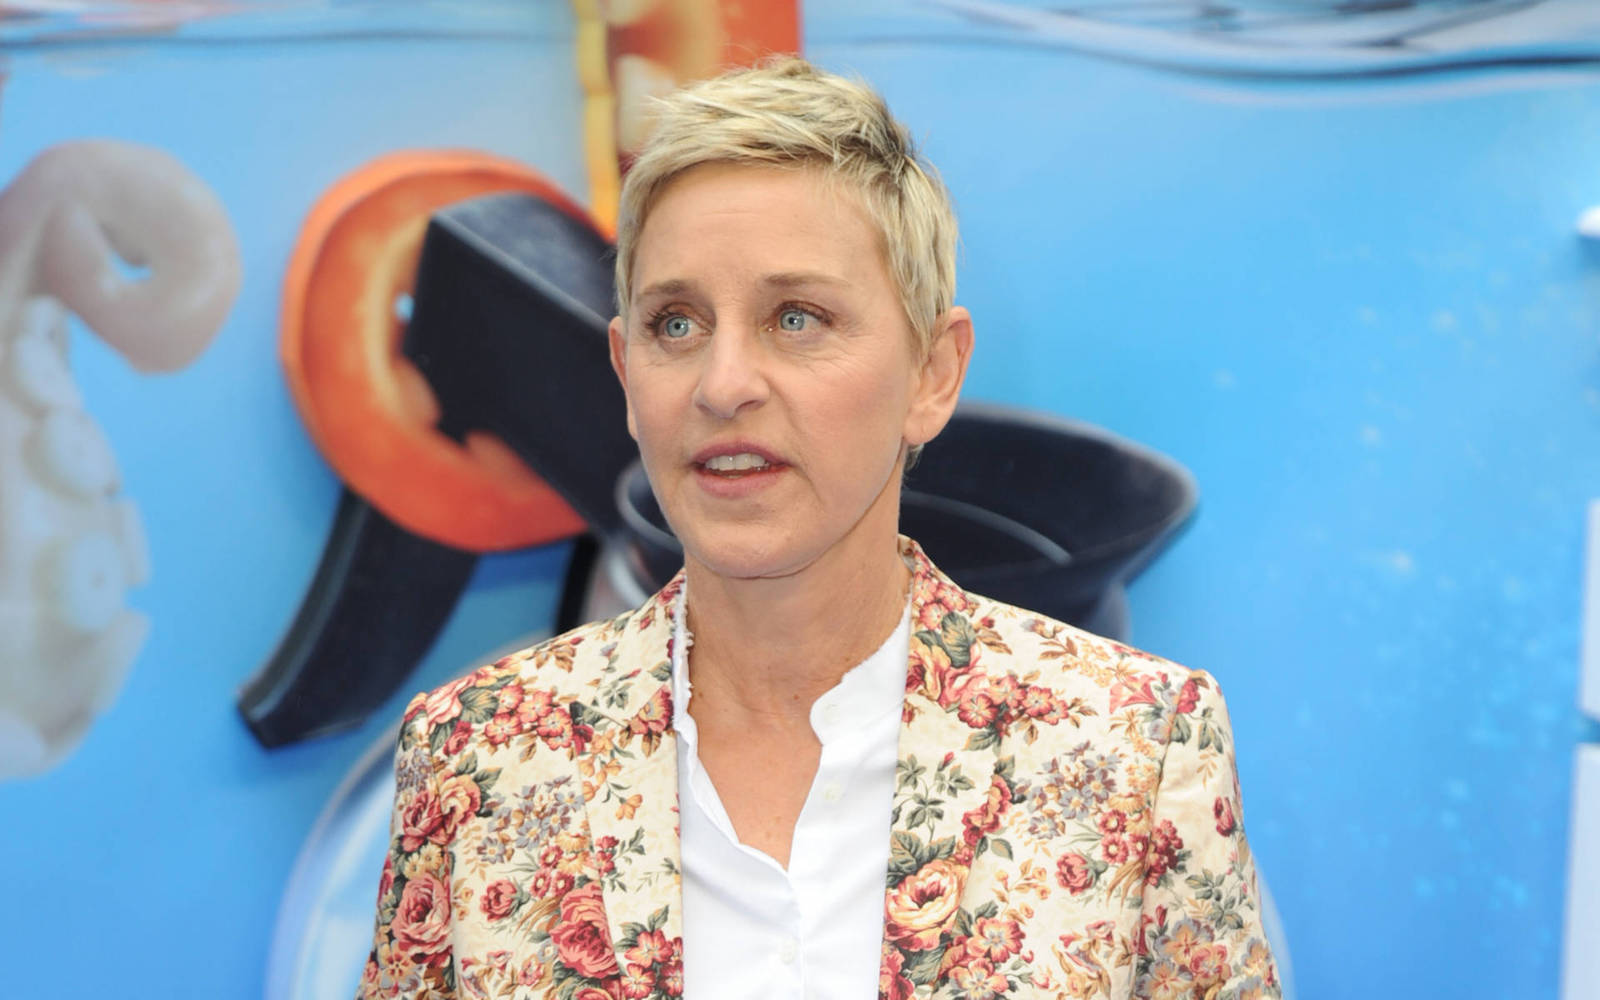 If you're looking to get tickets to 'The Ellen Show' after quarantine, we'd advised against it. Right now, the odds of the show staying on air aren't good.